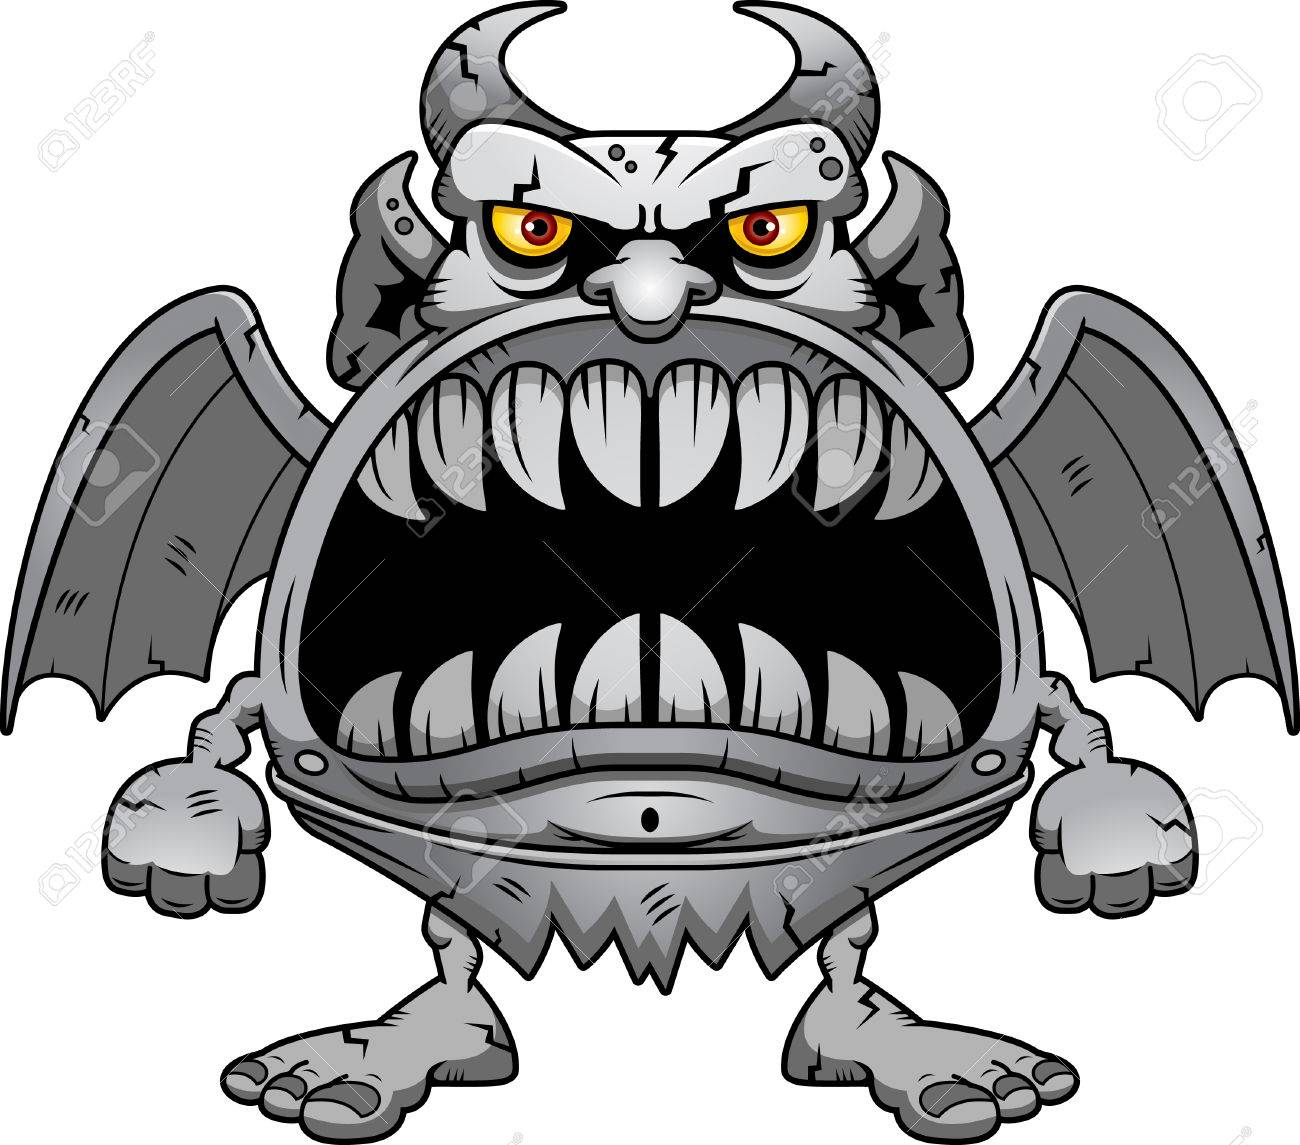 hight resolution of a cartoon illustration of a gargoyle with a big mouth full of sharp teeth stock